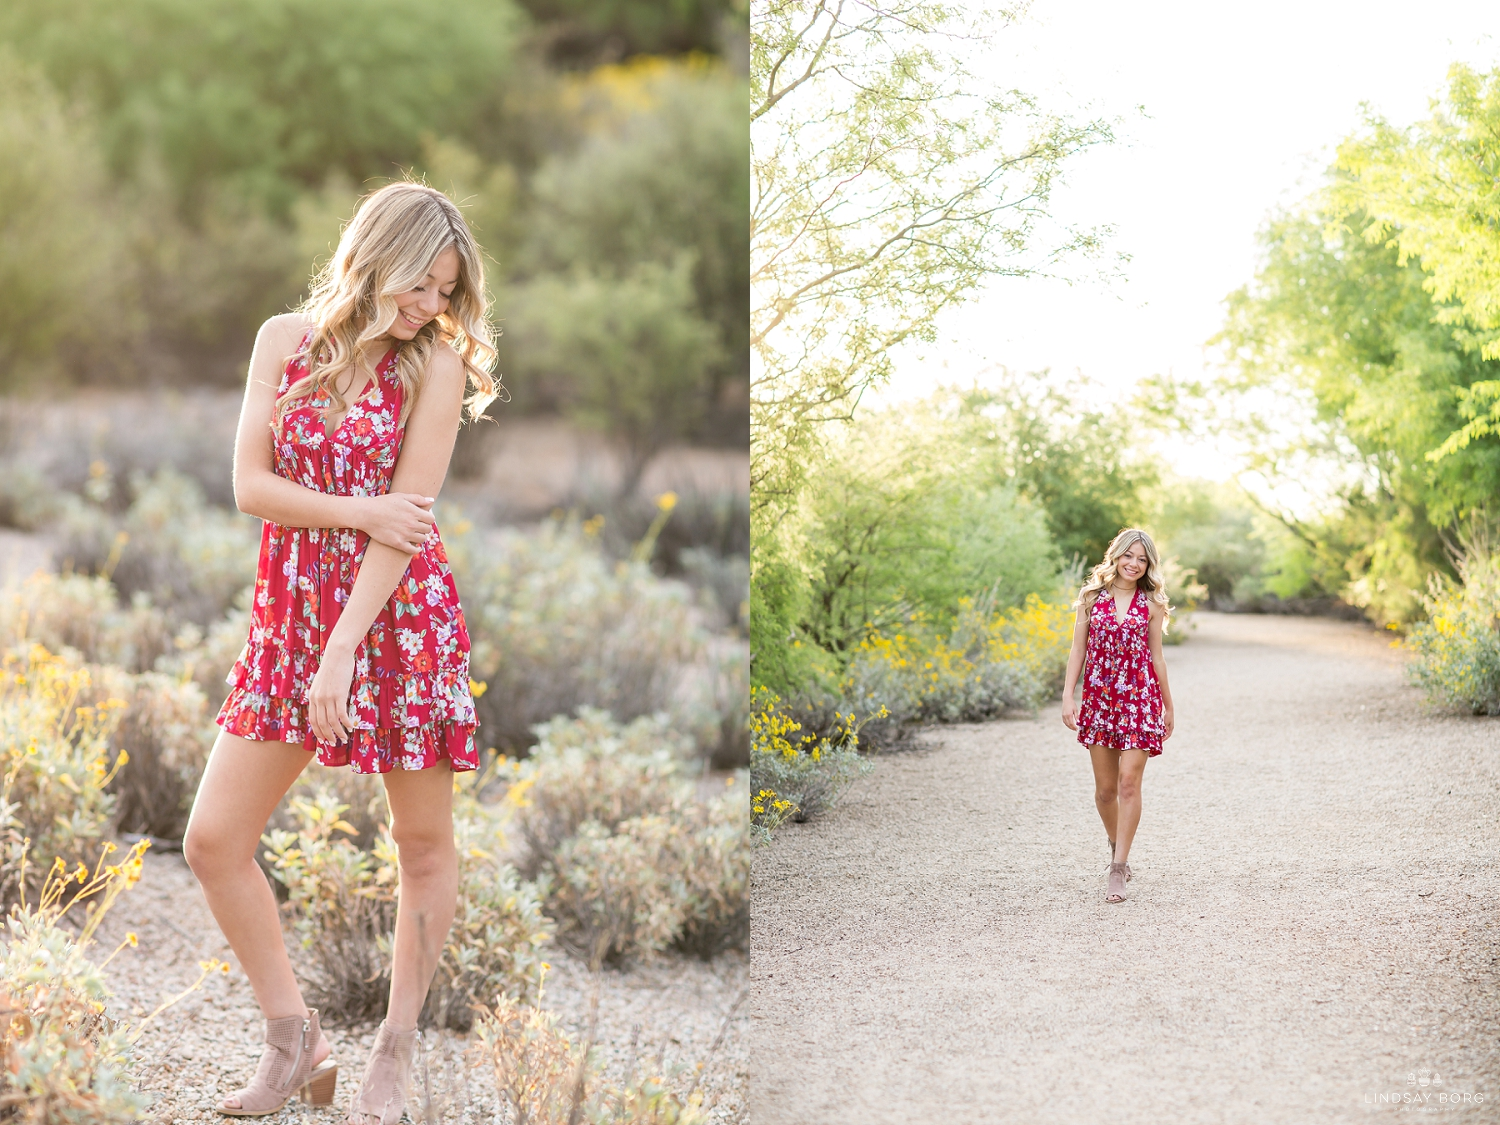 Lindsay-Borg-Photography-arizona-senior-wedding-portrait-photographer-az_2068.jpg